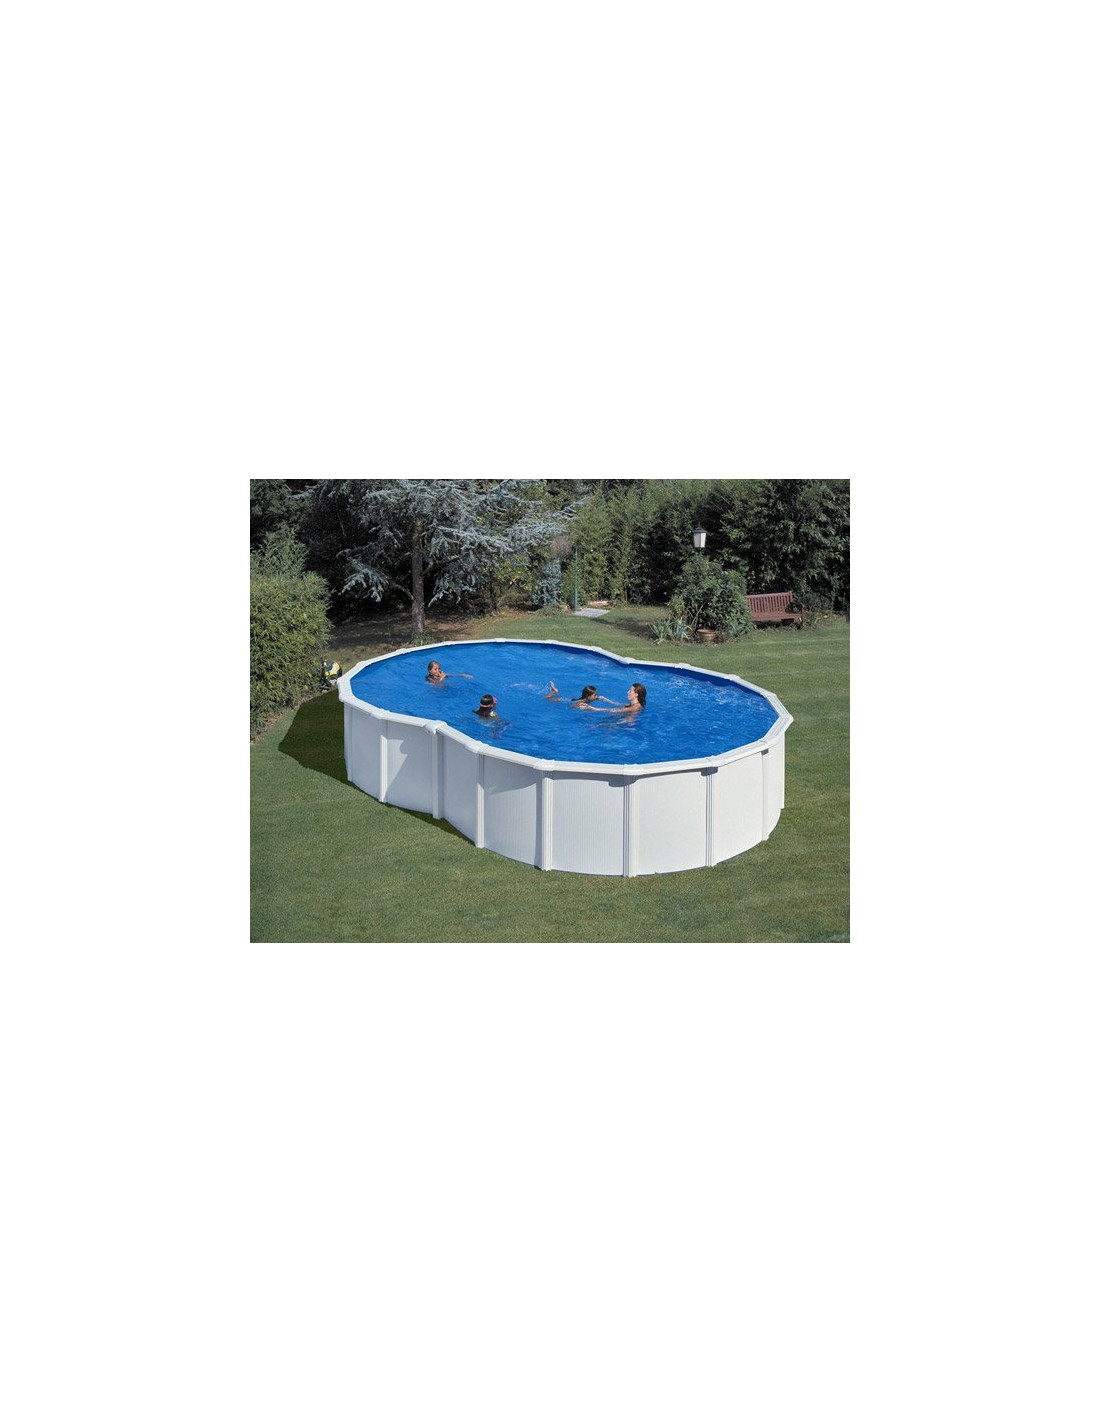 liner piscine hors sol liner piscine ronde swirl garden leisure liner piscine hors sol liner. Black Bedroom Furniture Sets. Home Design Ideas